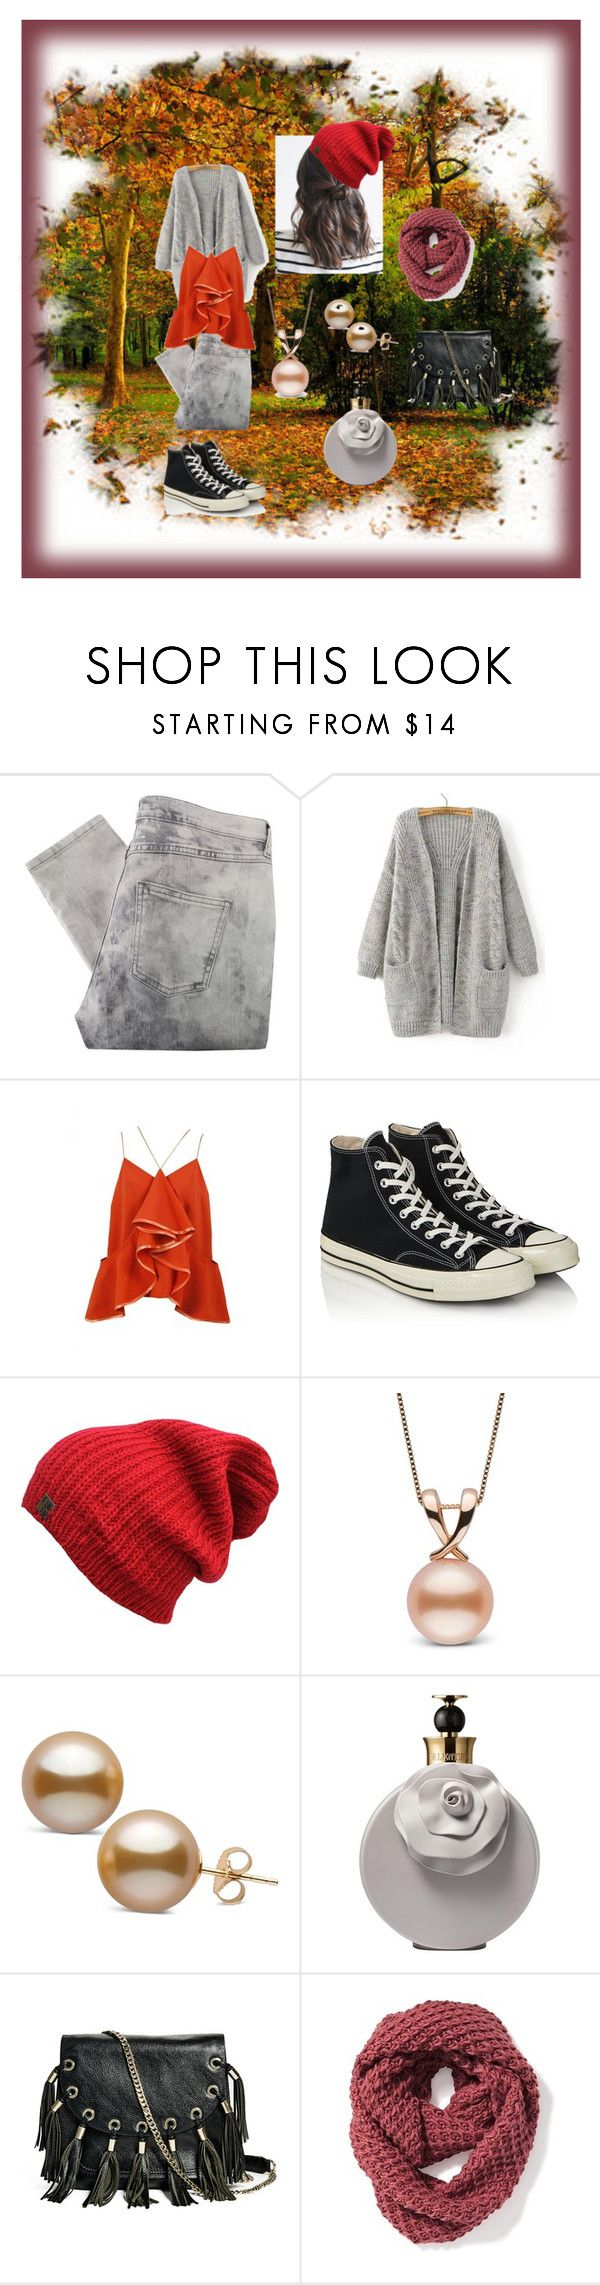 """Chic for the autumn"" by golosa ❤ liked on Polyvore featuring Maison Margiela, Converse, Valentino, GUESS by Marciano and Old Navy"